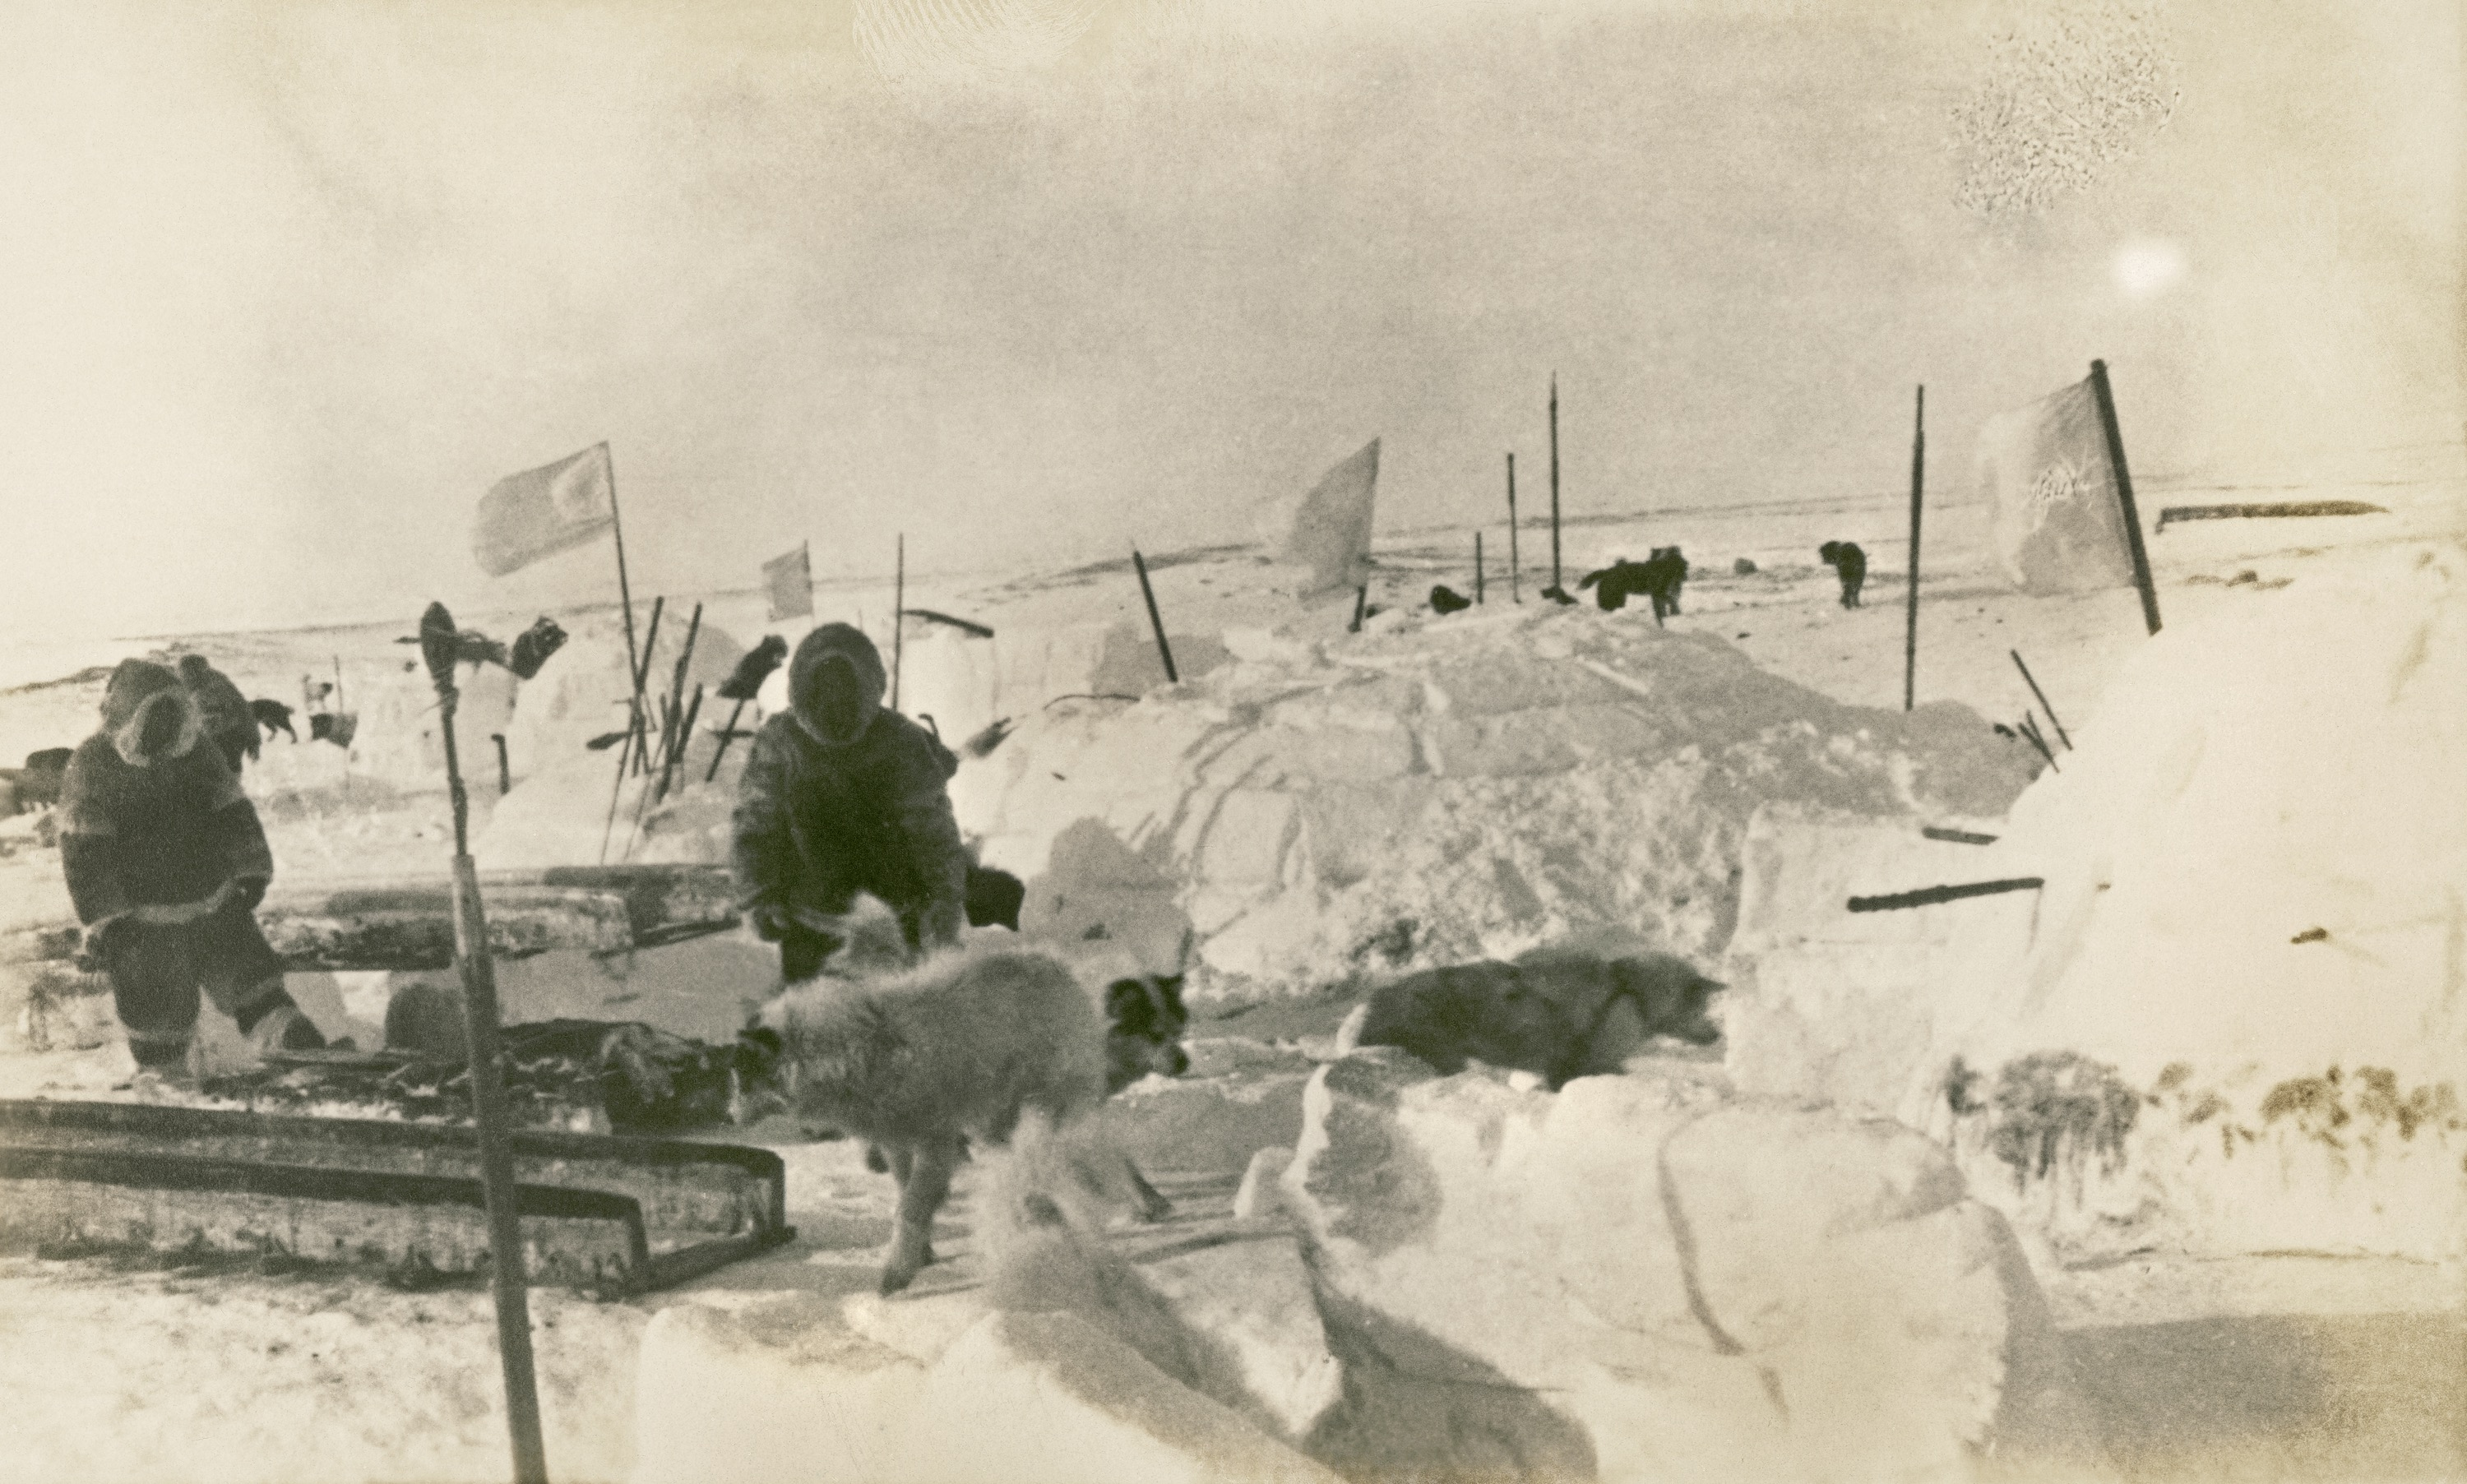 Black and white image of men and dogs in artic setting.